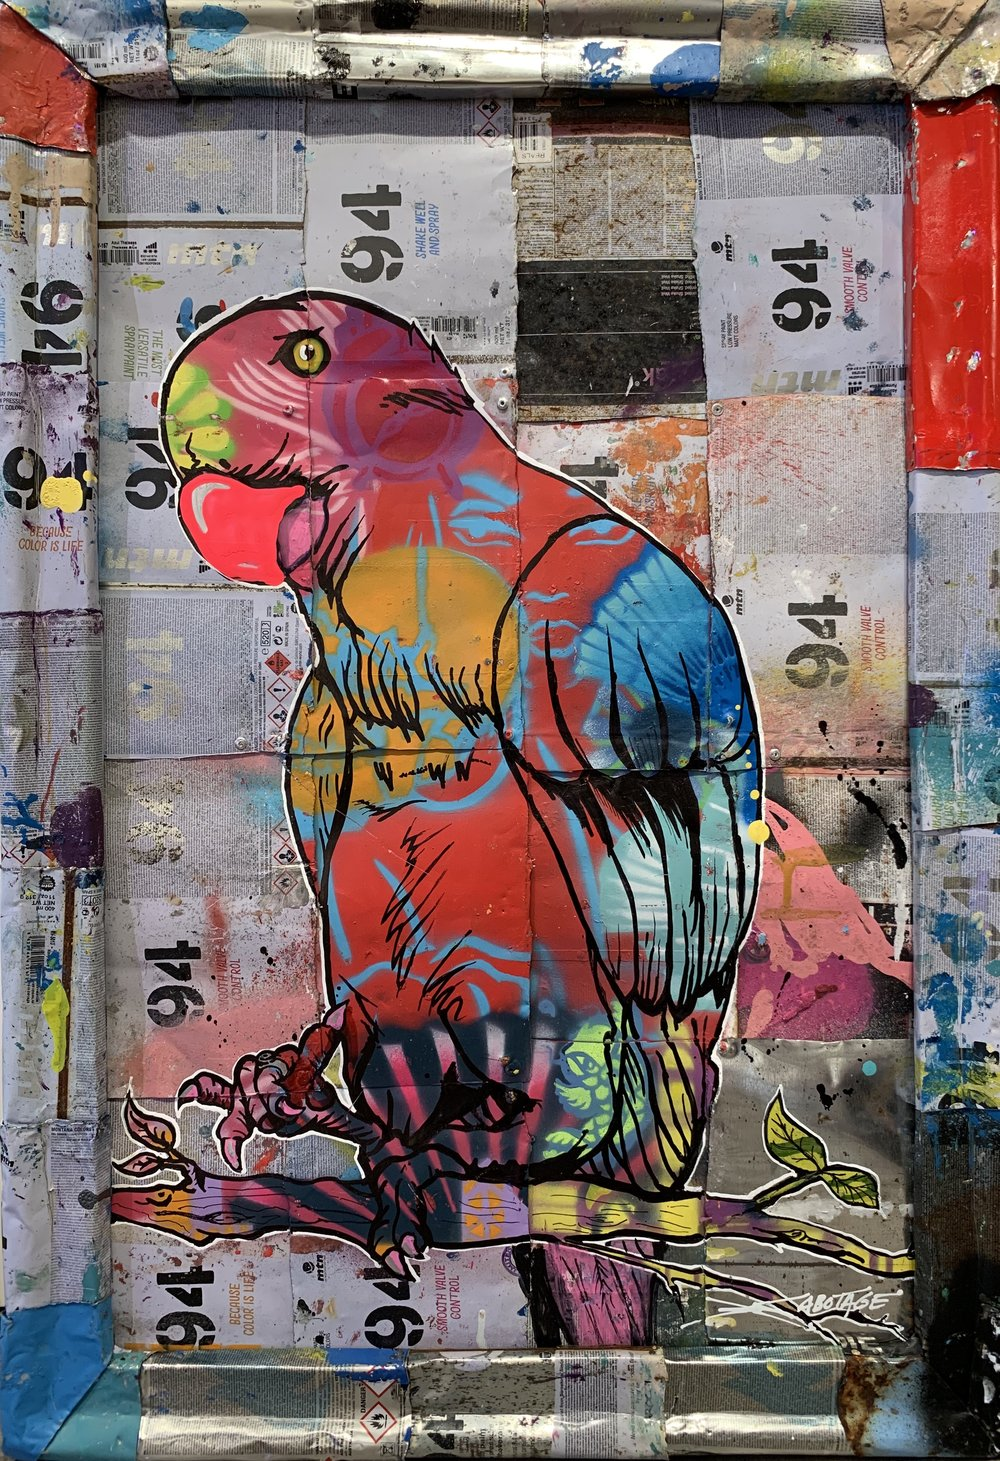 """""""Parrot"""" Stencil Mixed Media Spray Paint and Graffiti Markers on deconstructed Can Background 78 x 54 cm 2018"""